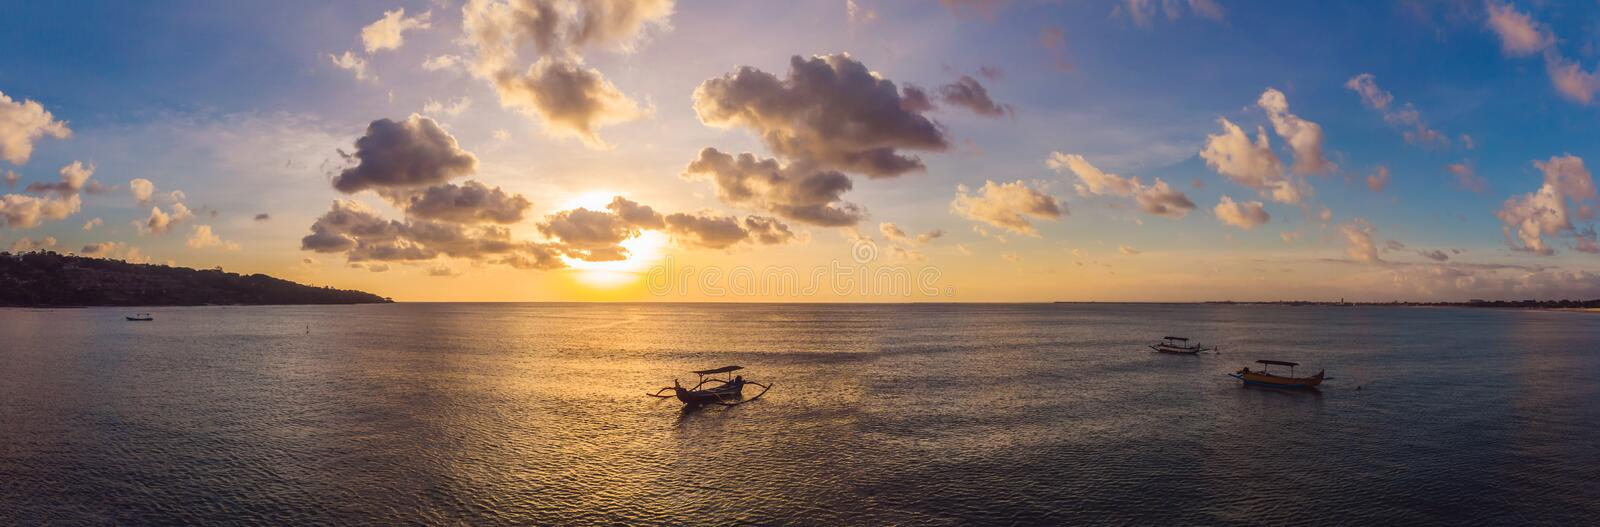 Traditional Balinese boat Jukung at Jimbaran beach at sunset in Bali, Indonesia Photo from the drone. Traditional Balinese boat Jukung at Jimbaran beach at royalty free stock photo